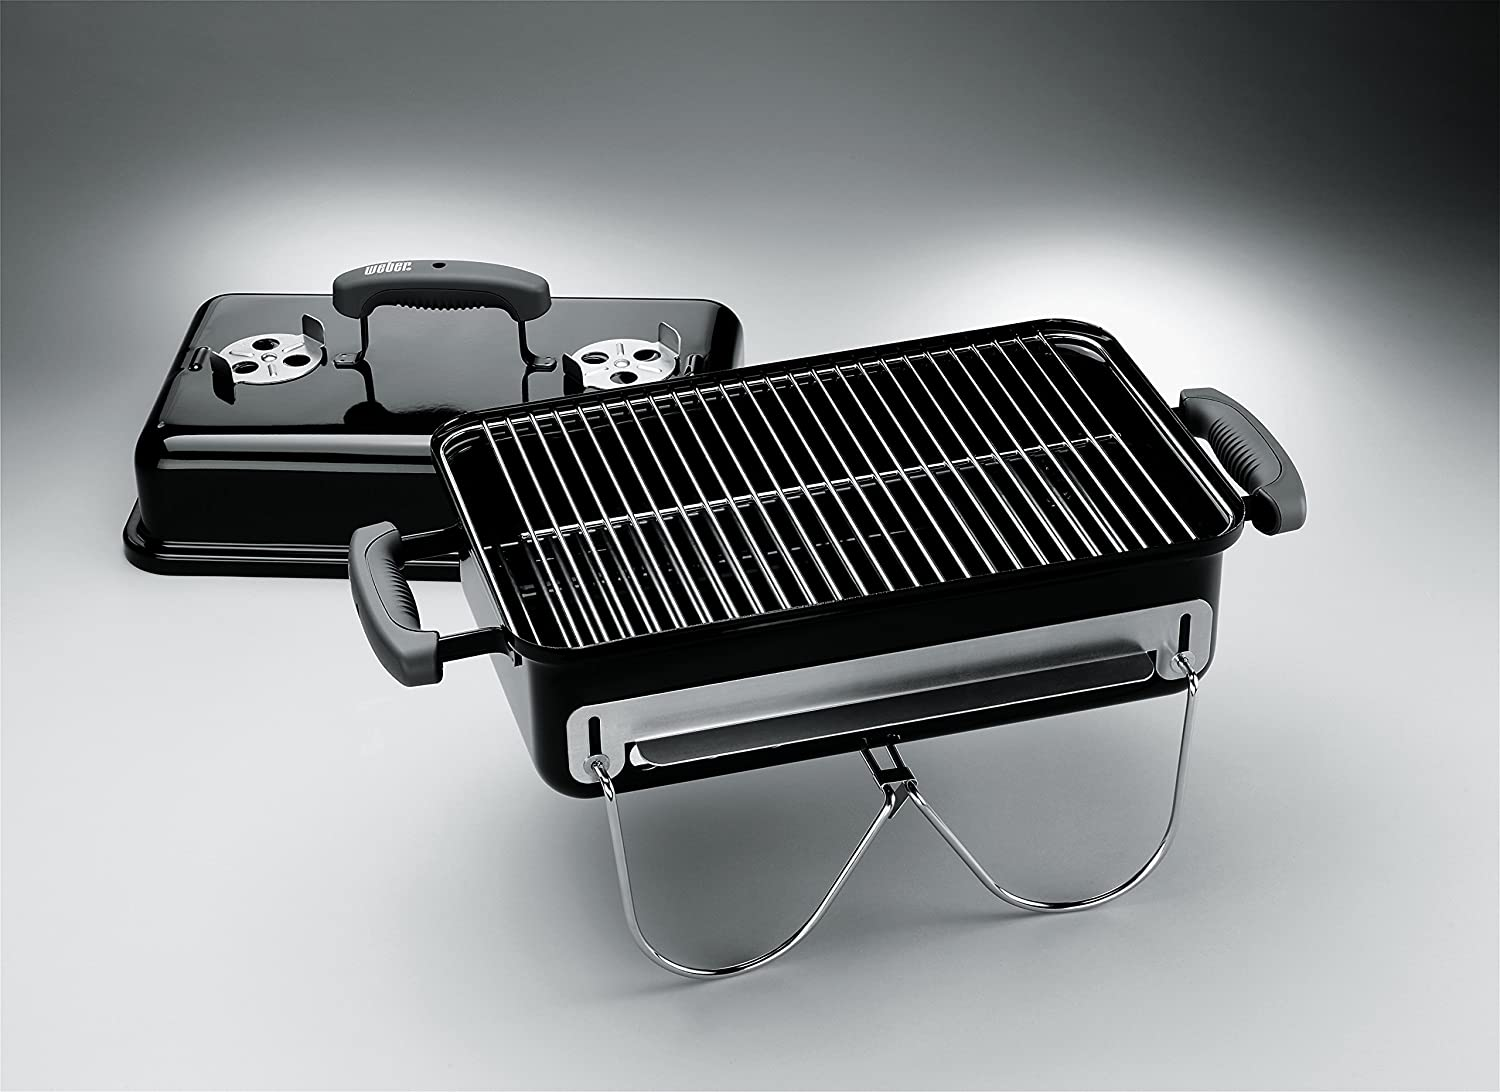 best portable grill for tailgating top 7 grills for. Black Bedroom Furniture Sets. Home Design Ideas